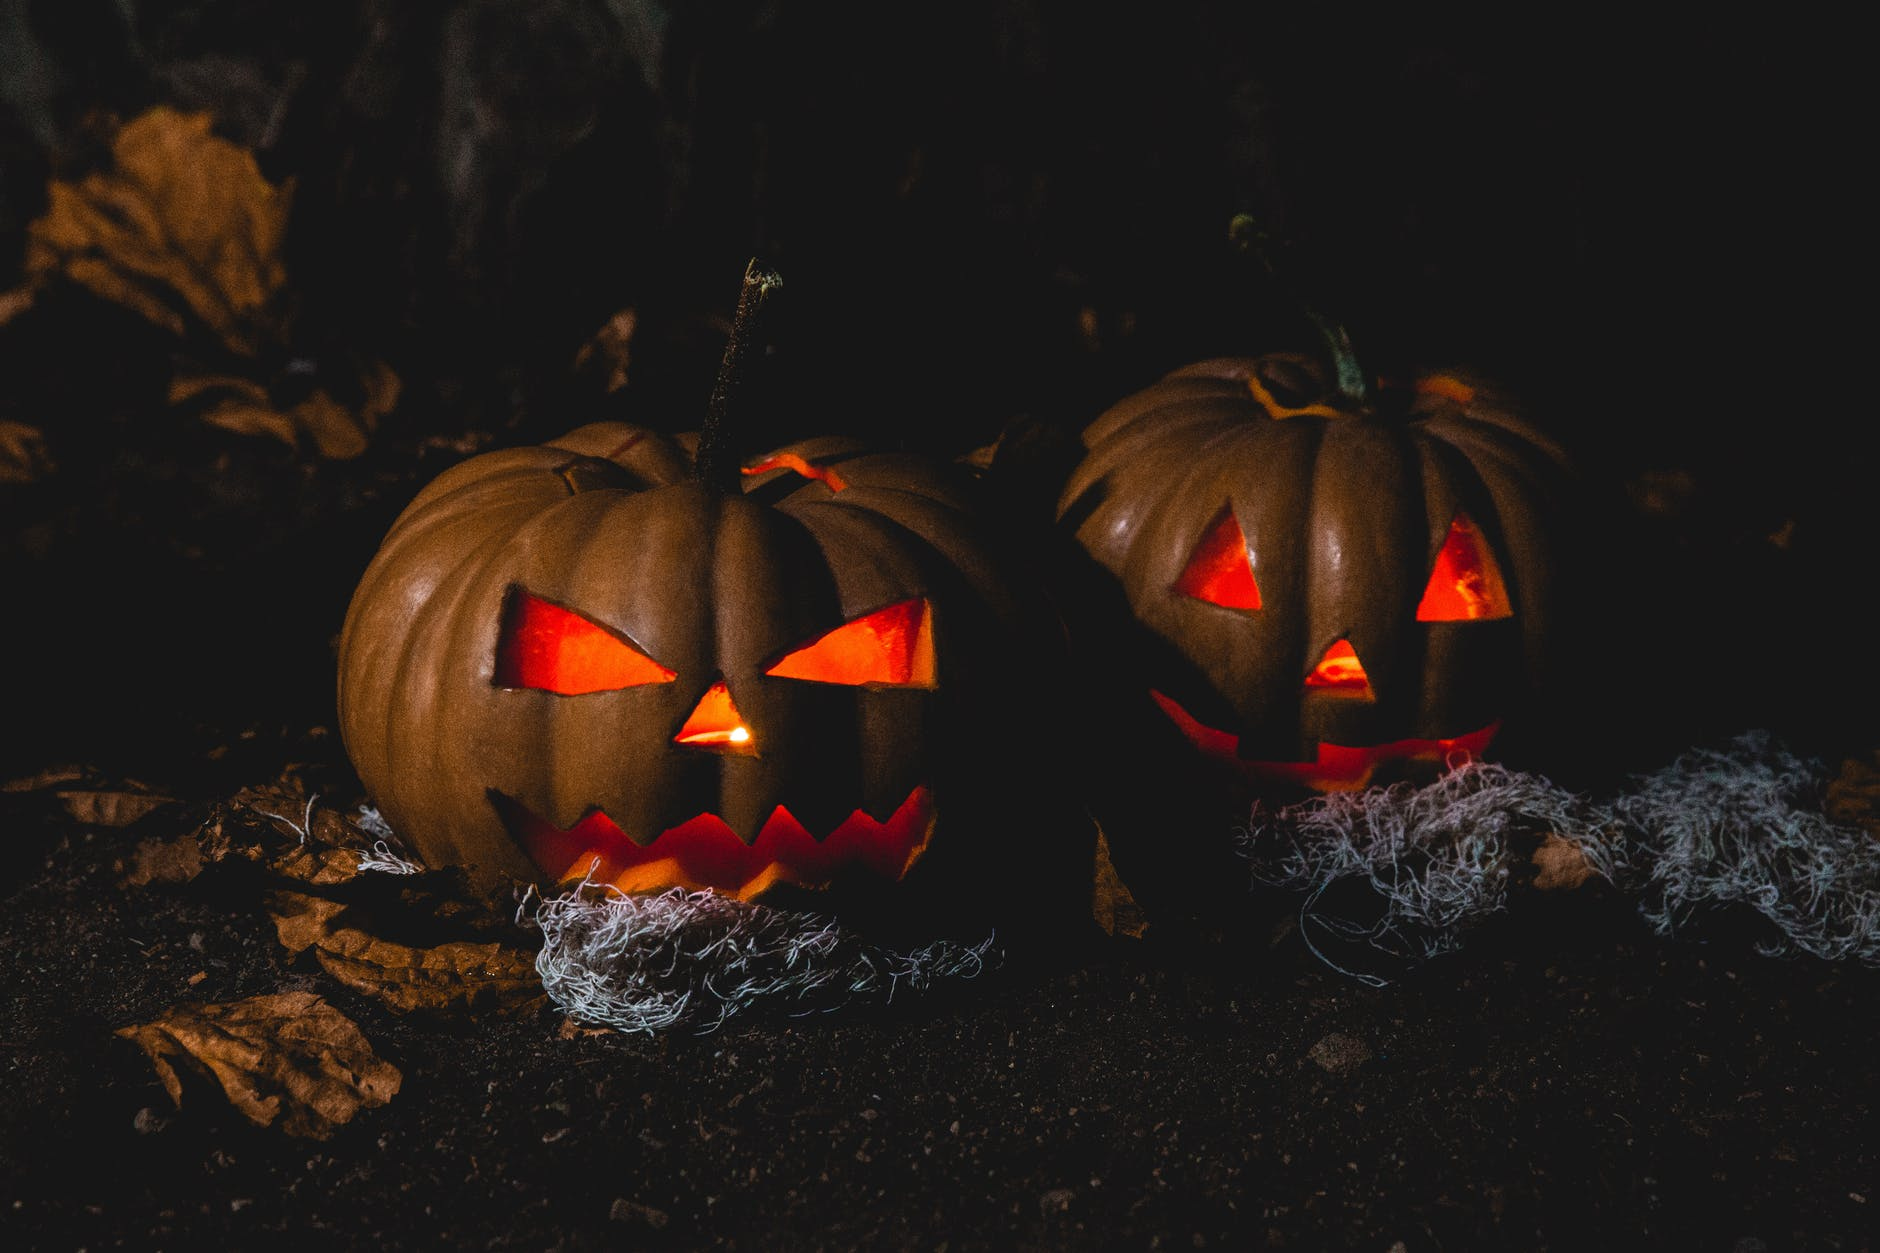 Night time with two pumpkins that have been carved with a spooky face, that are both lit up laying on the ground outside.